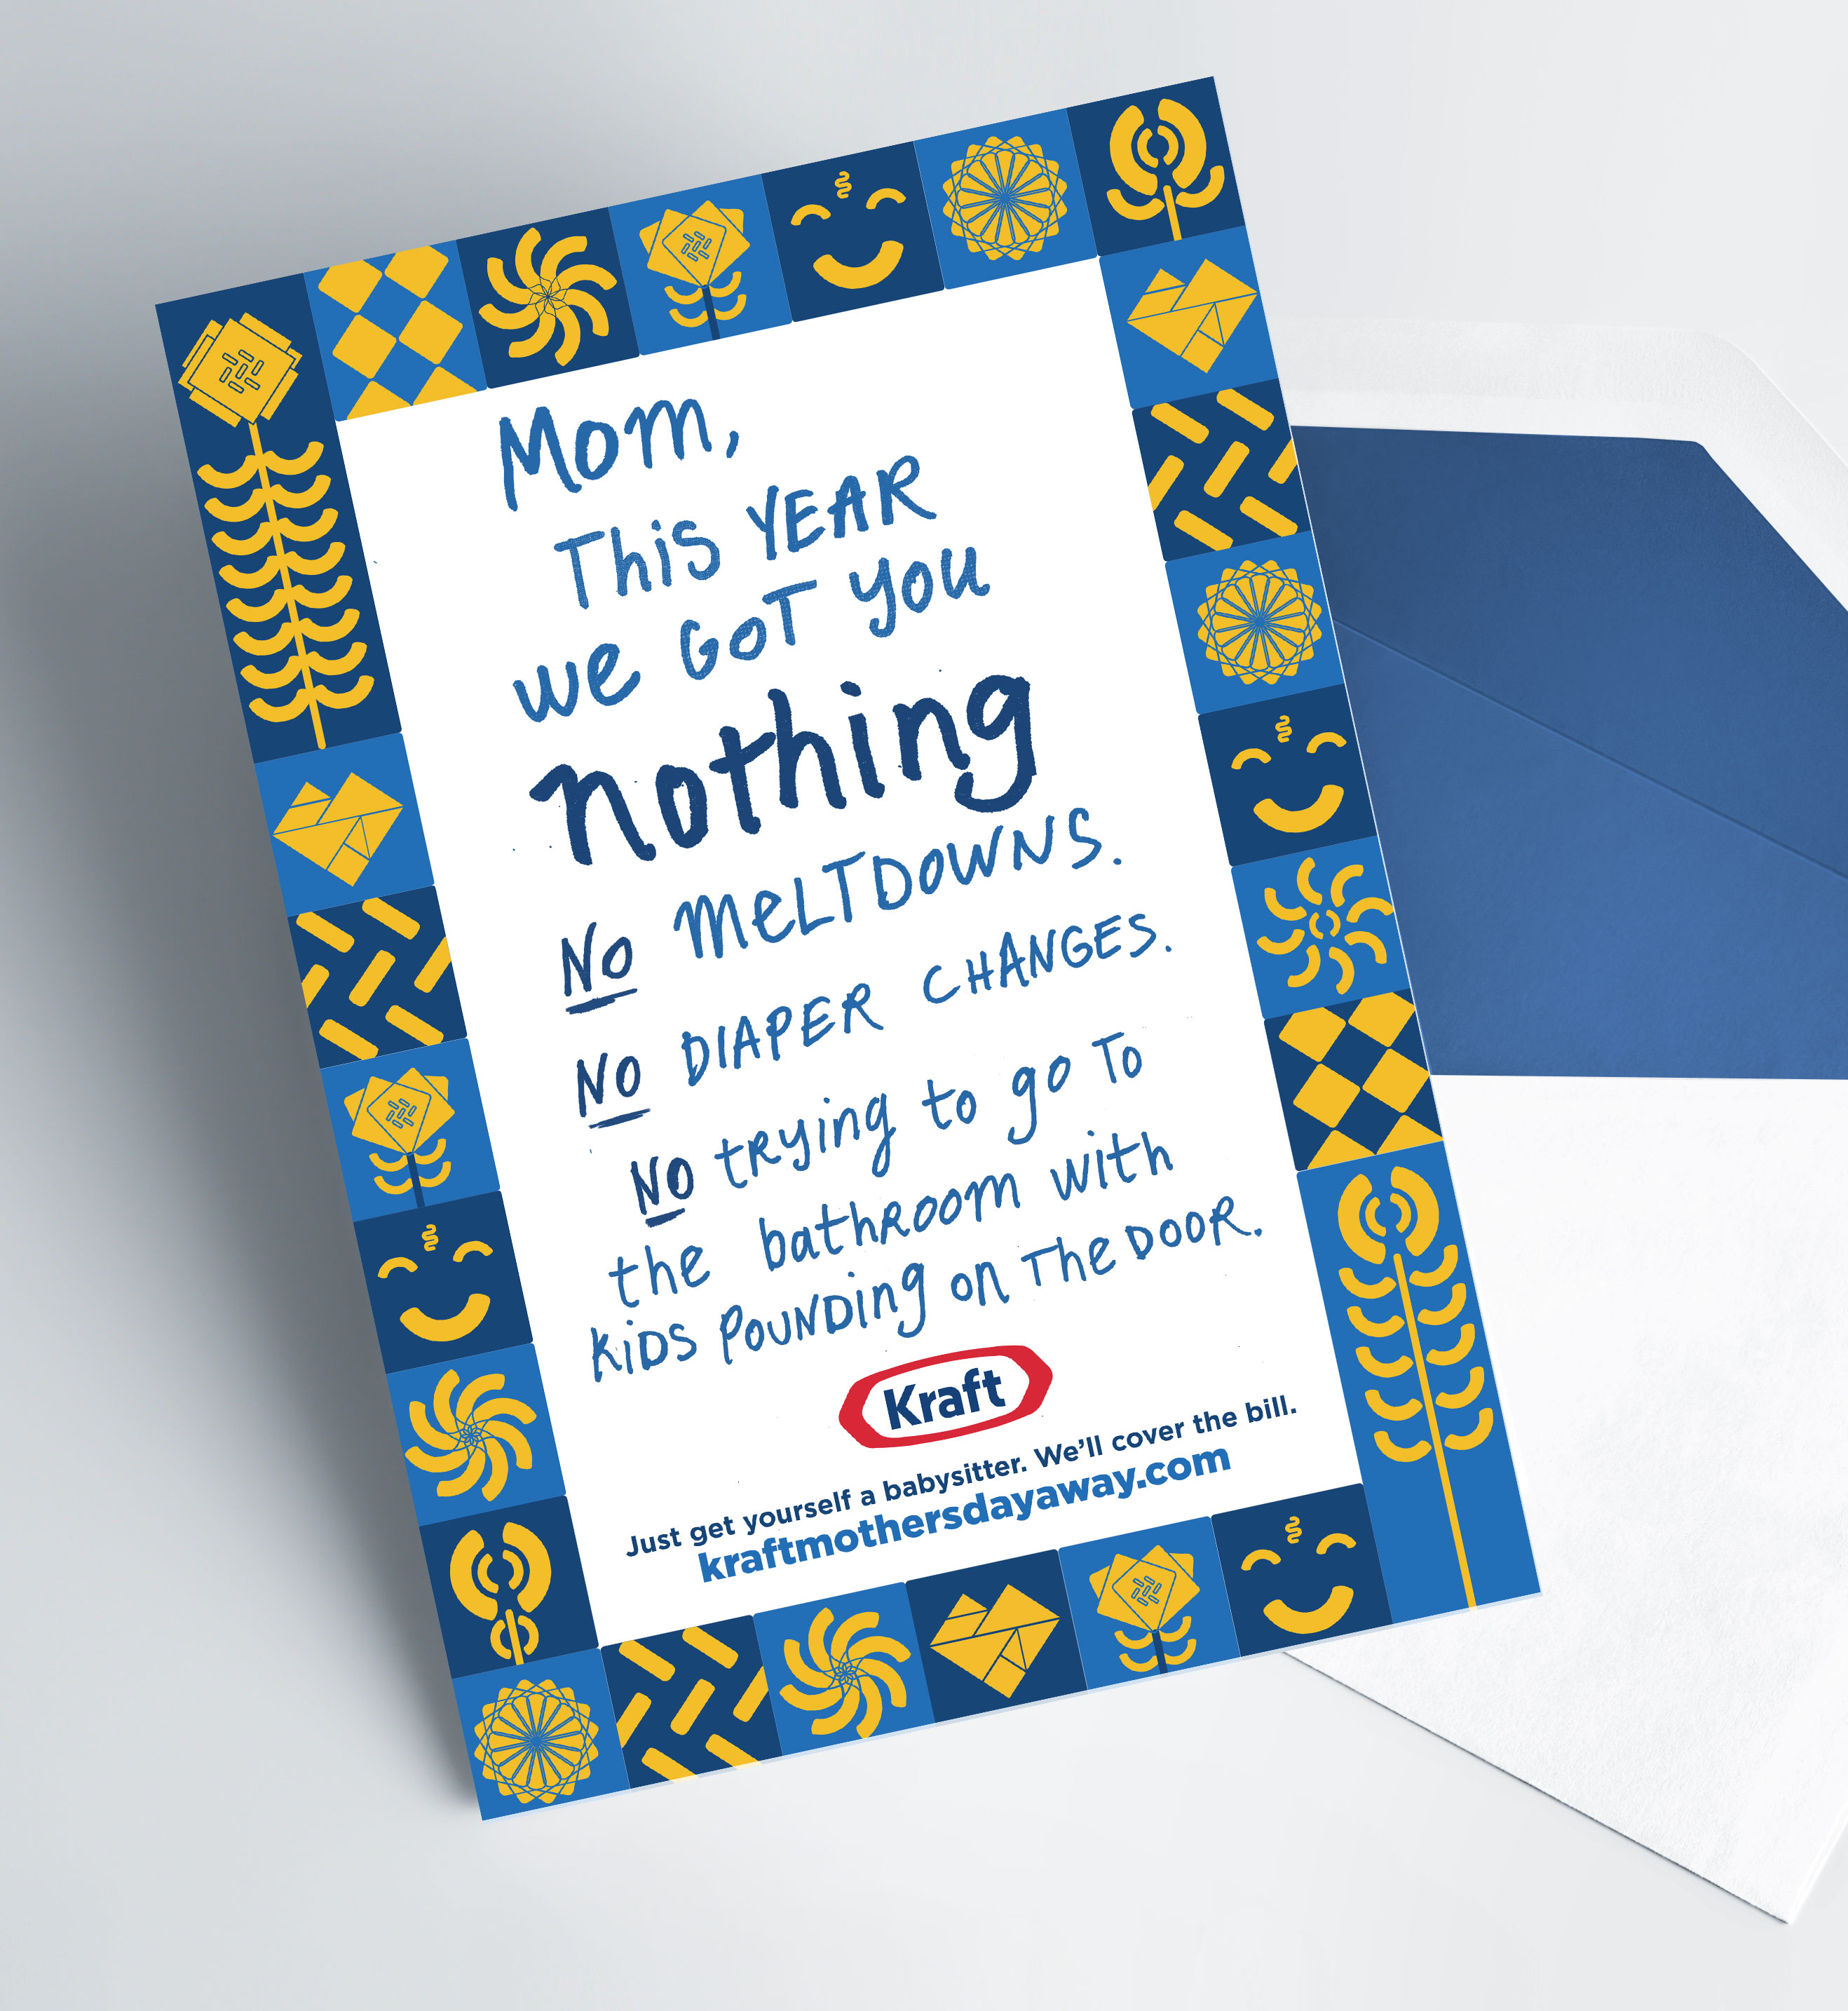 Kraft Mother's Day Away